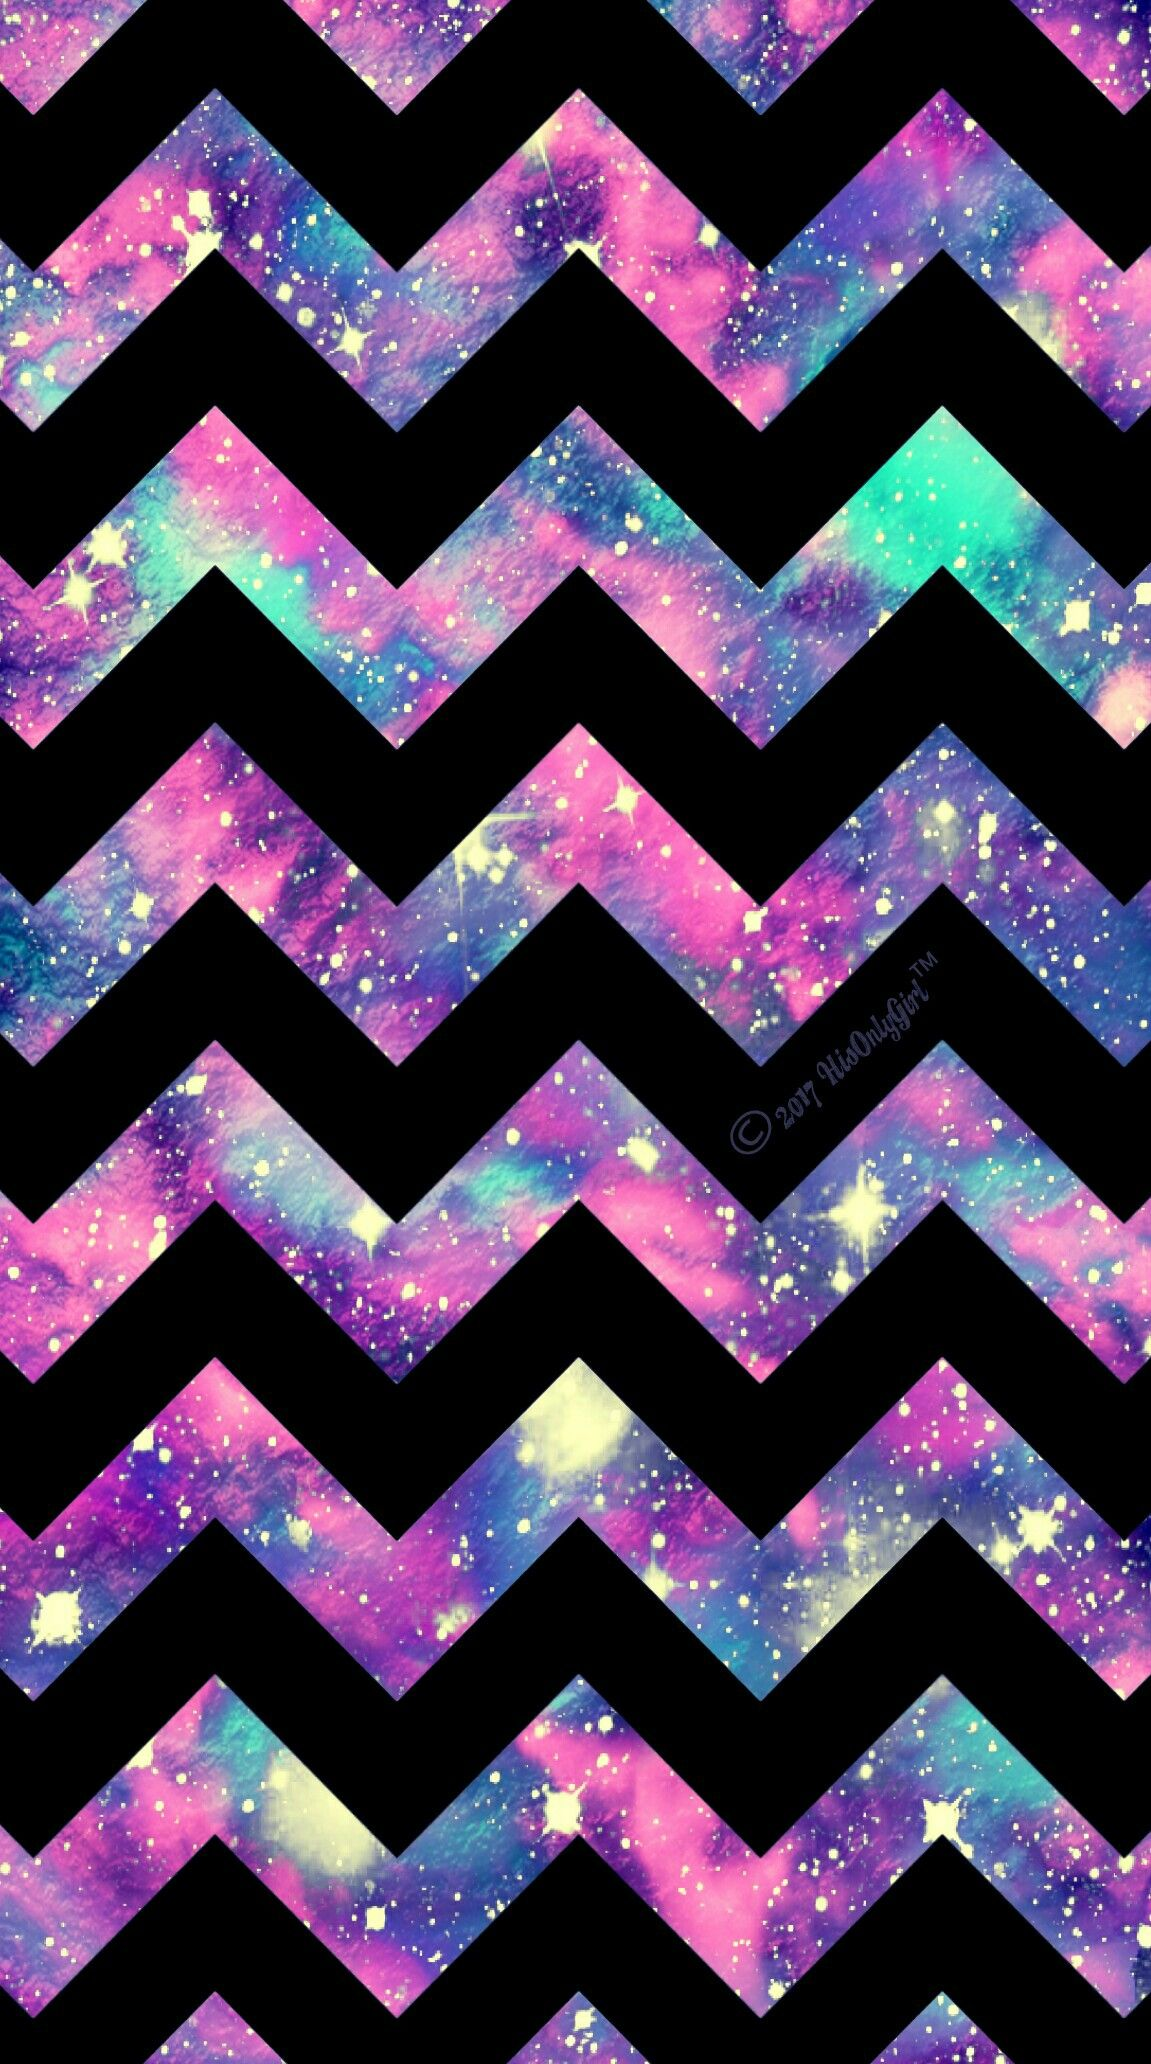 Cute Chevron galaxy iPhoneAndroid wallpaper I created